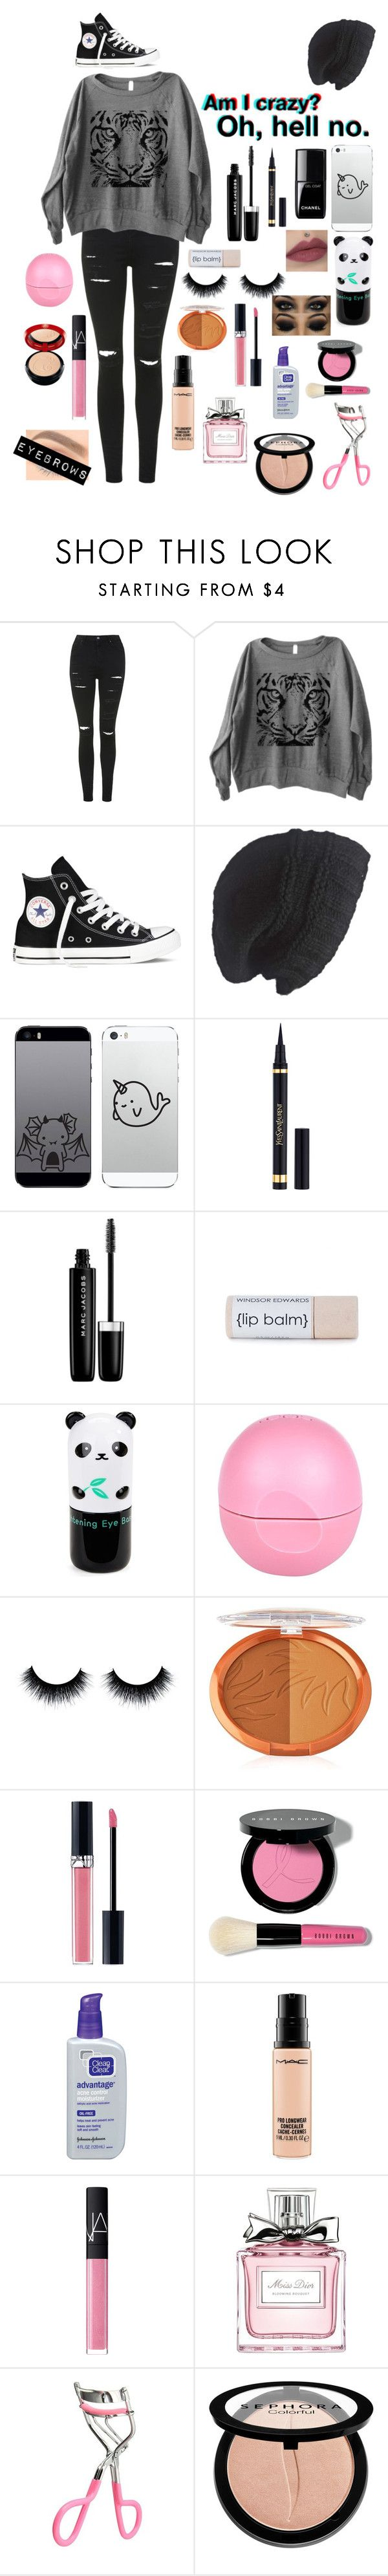 """Random..."" by emo-kyleigh ❤ liked on Polyvore featuring Topshop, Converse, Laundromat, Yves Saint Laurent, Marc Jacobs, Tony Moly, River Island, Christian Dior, Bobbi Brown Cosmetics and MAC Cosmetics"